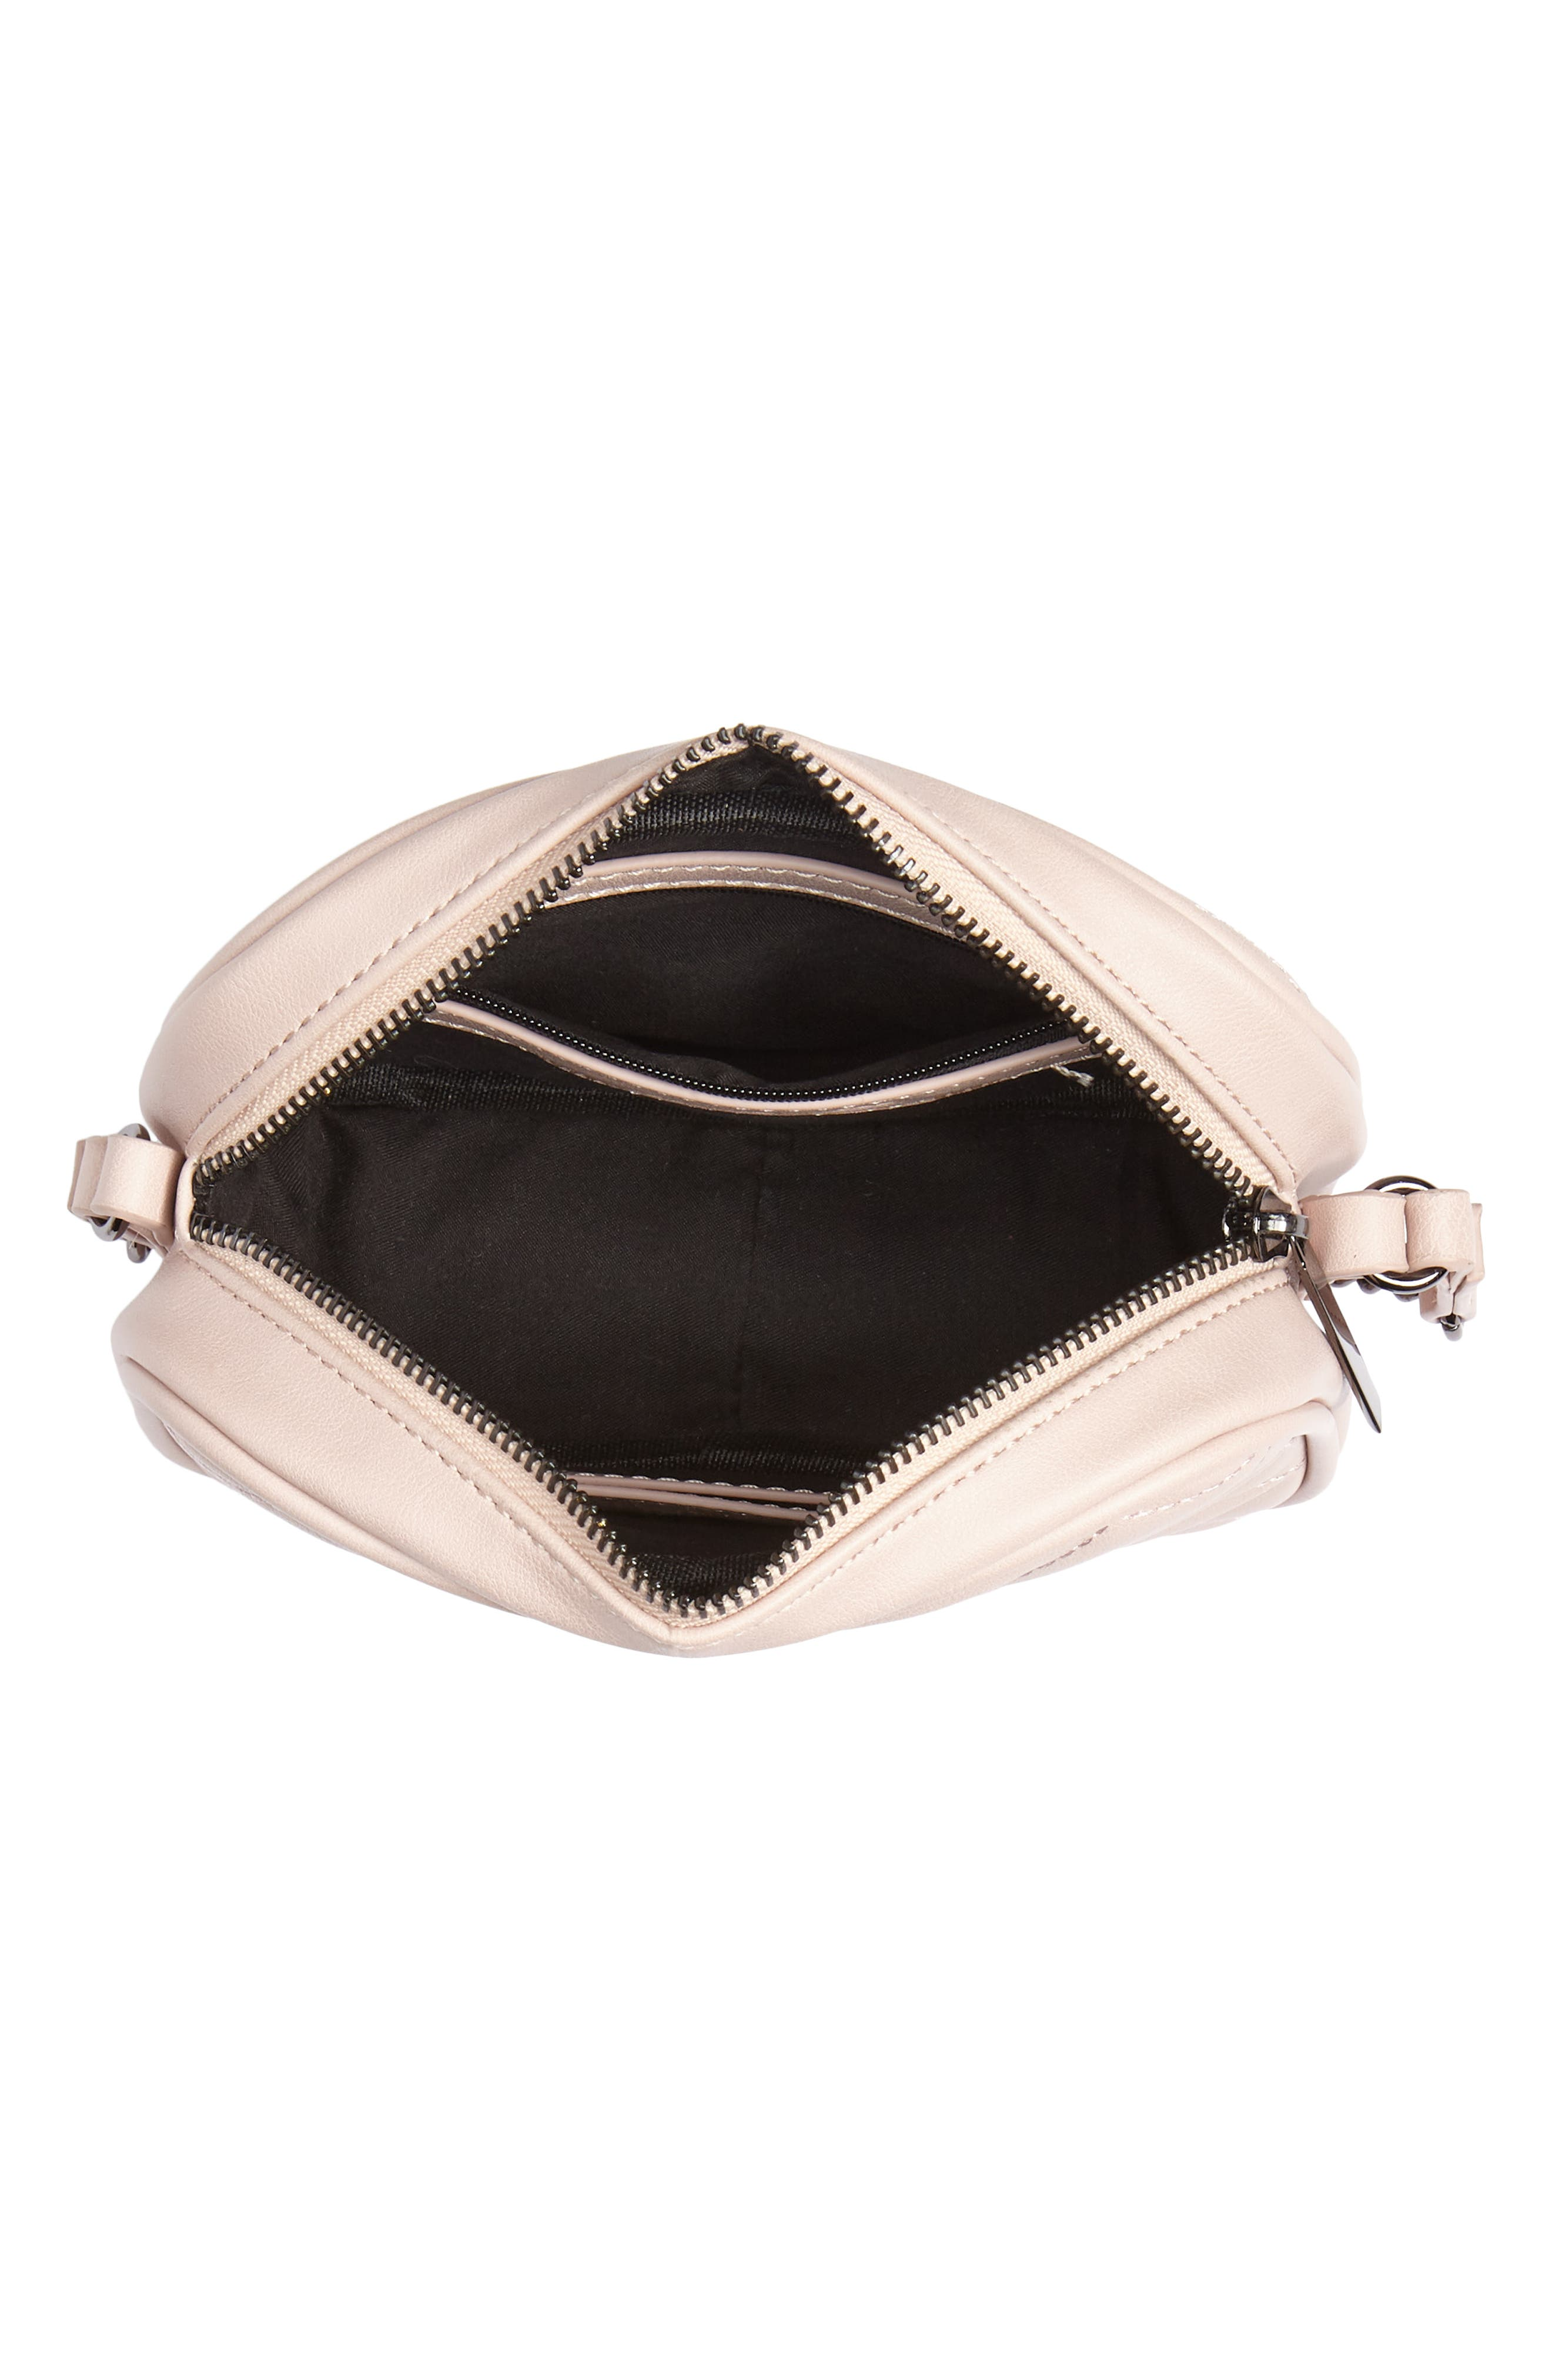 MALI + LILI, Taylor Quilted Vegan Leather Crossbody Camera Bag, Alternate thumbnail 5, color, 650